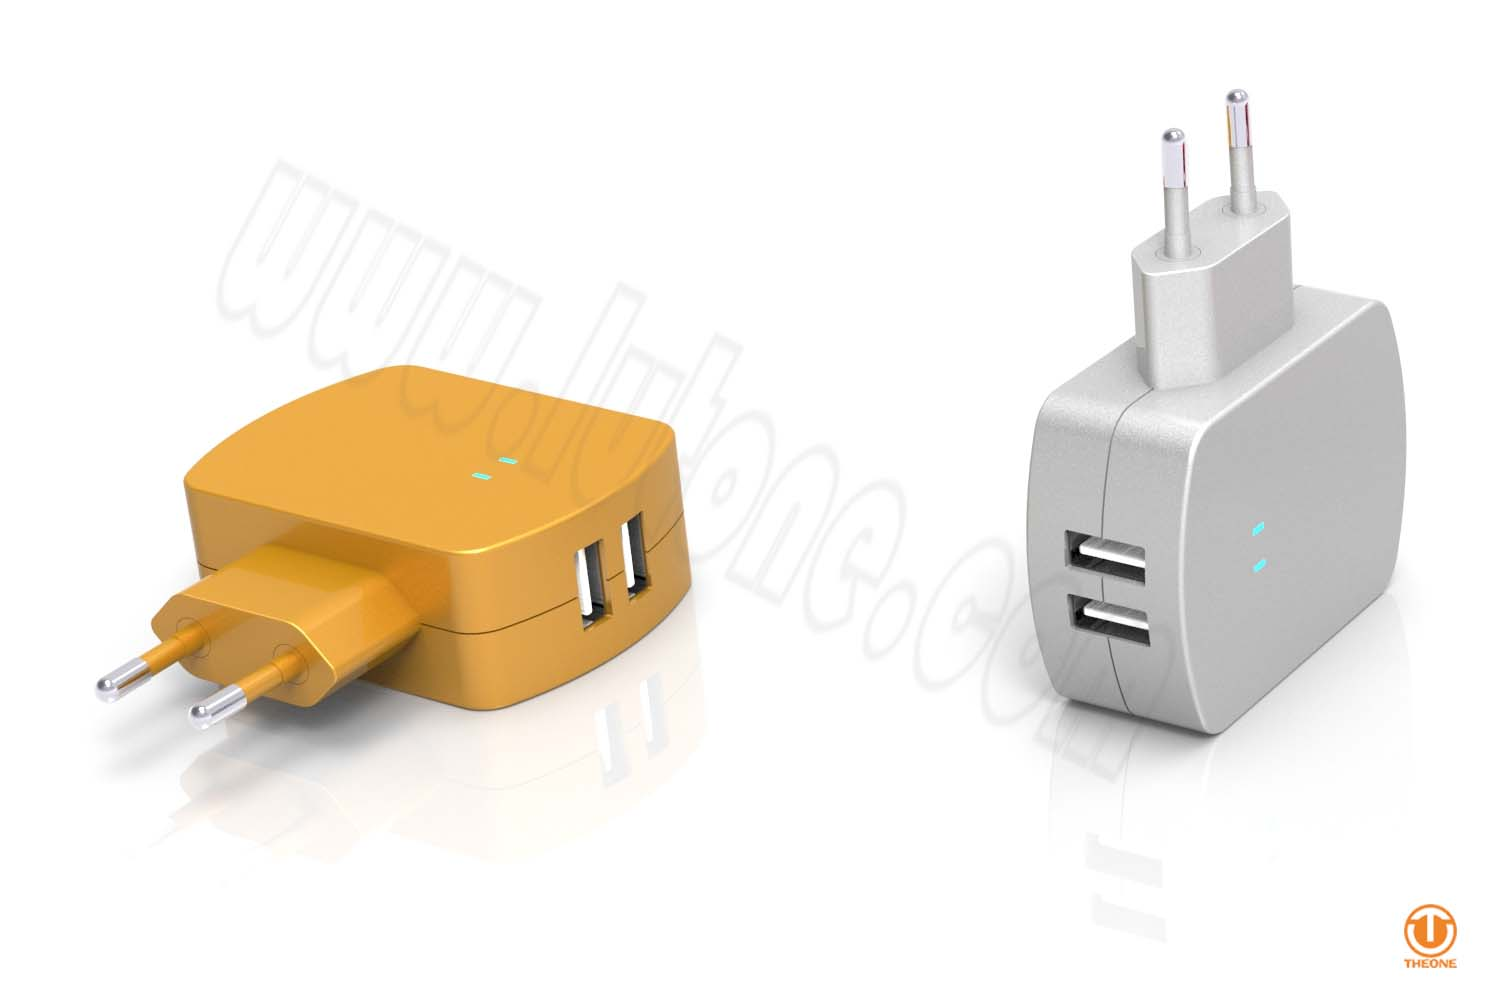 tc02b6-2 dual usb wall charger